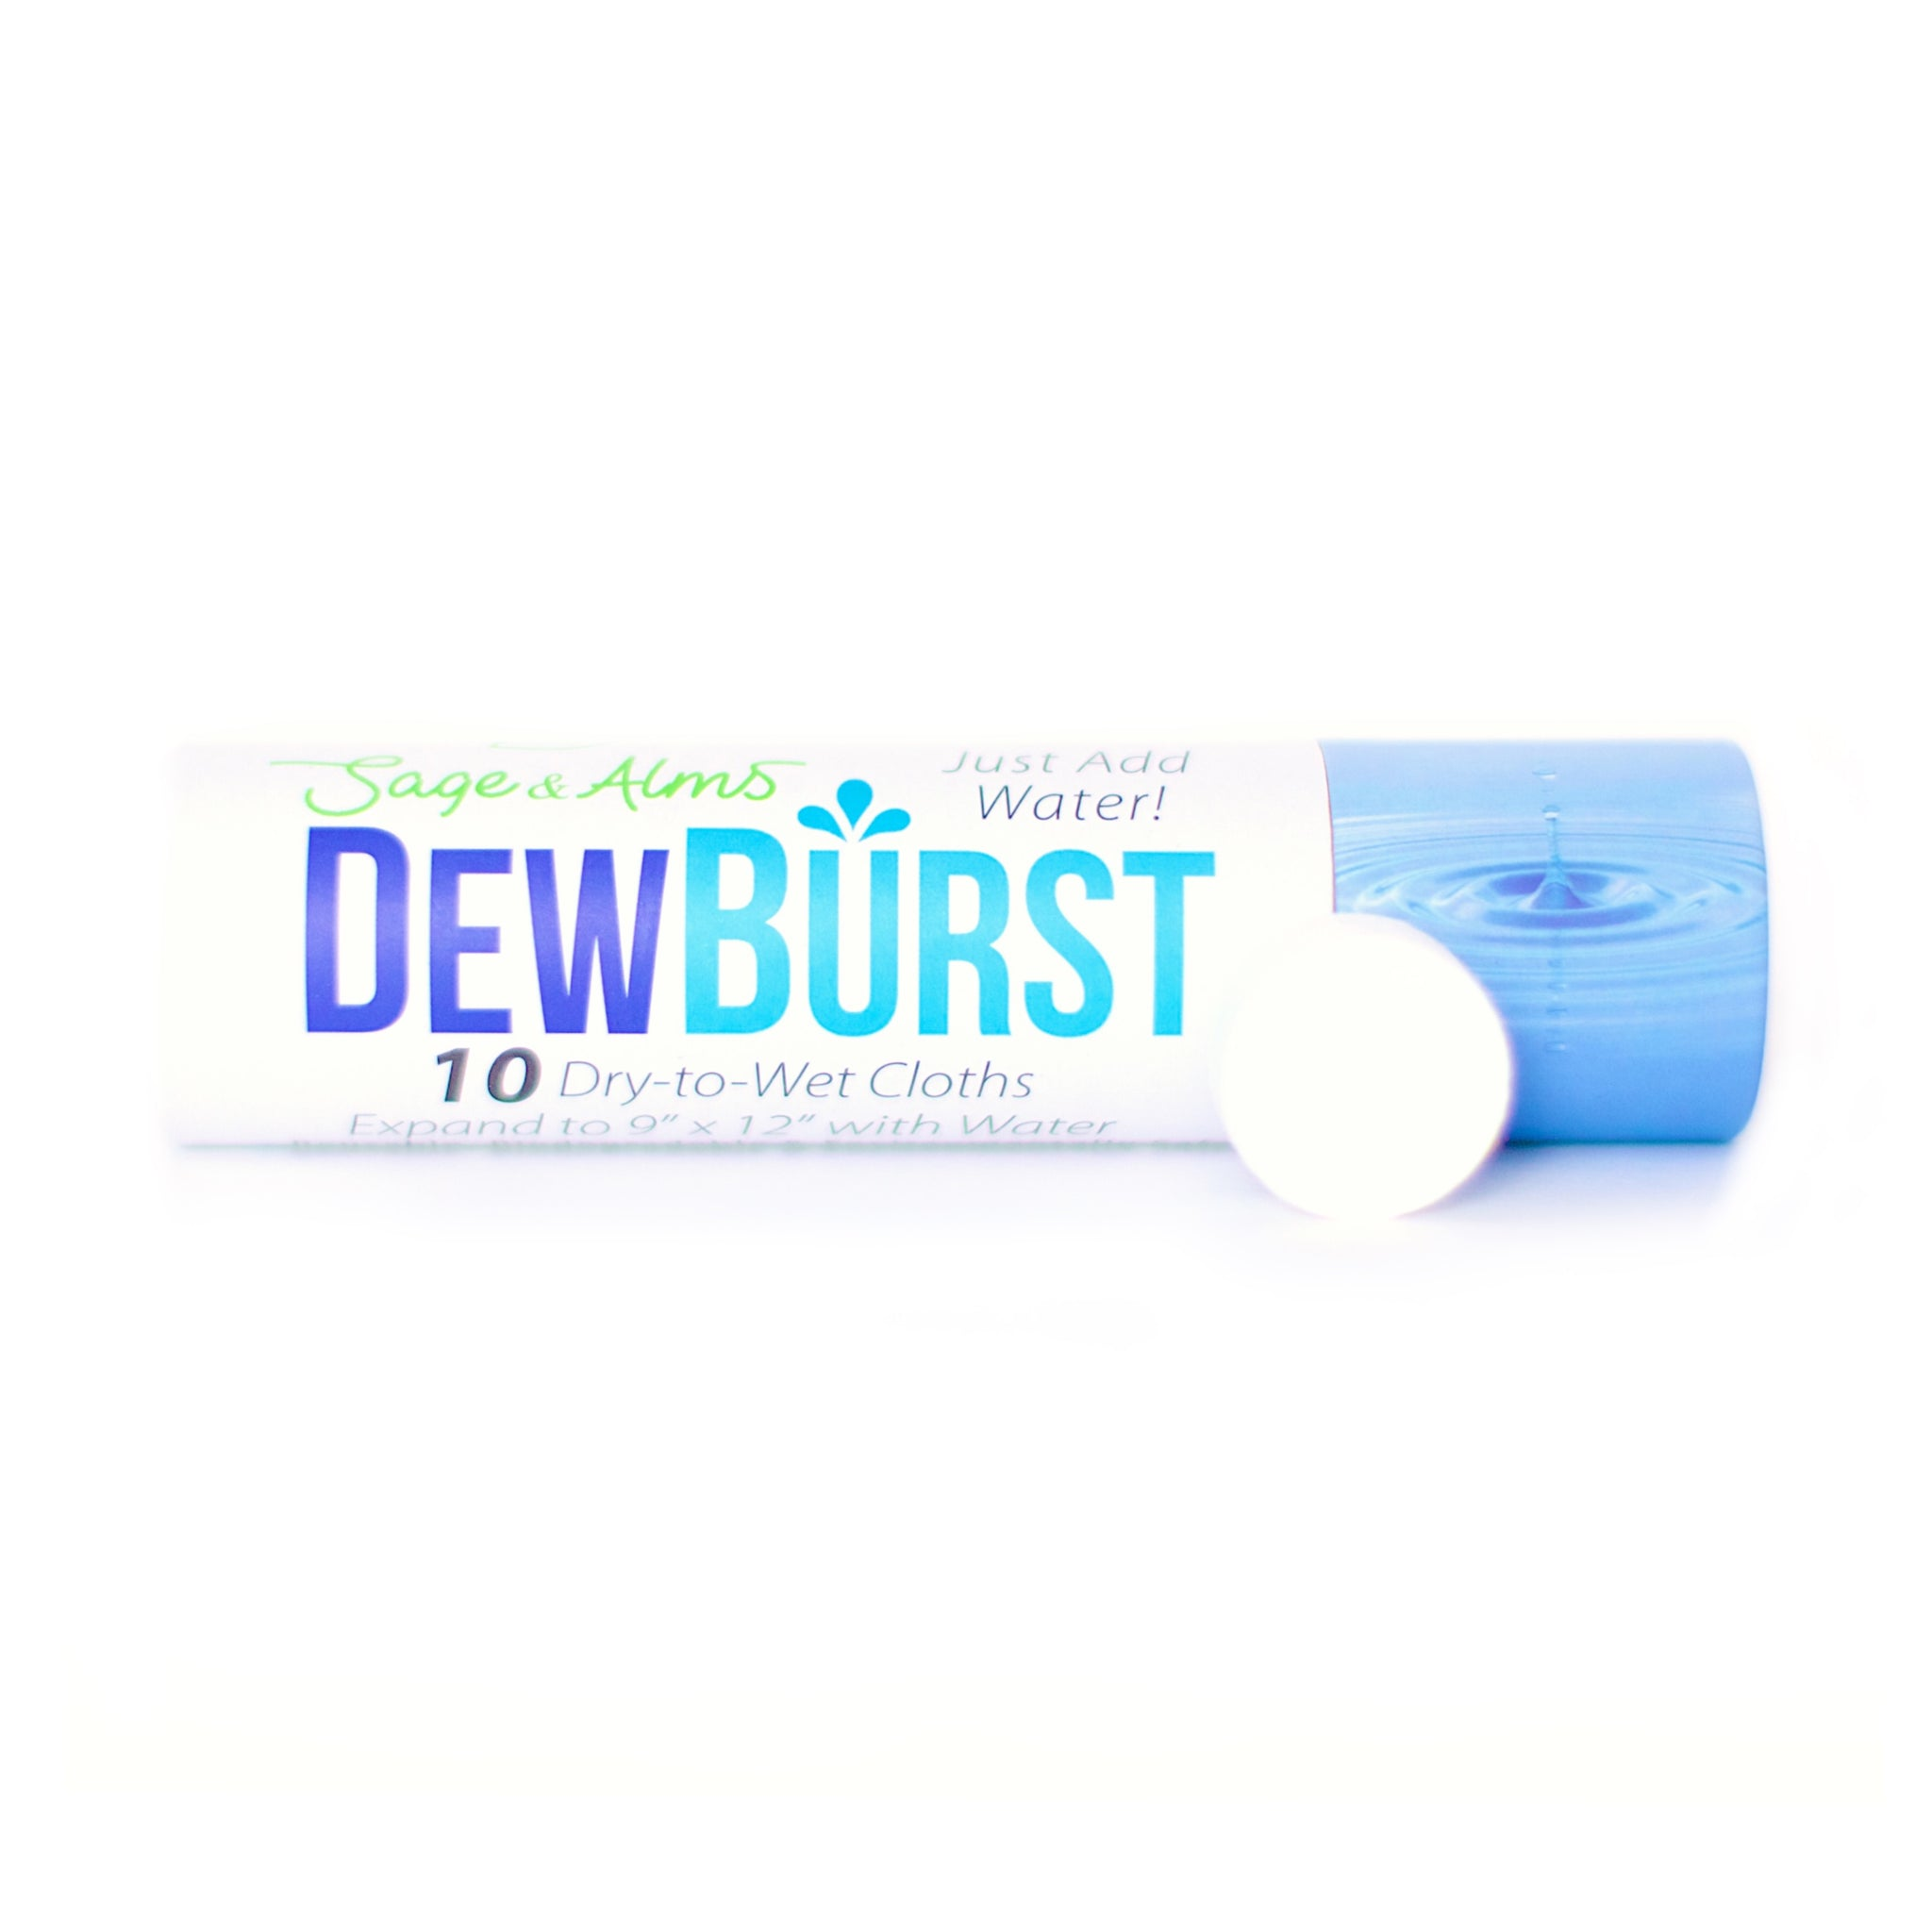 5 Tubes | 50 Cloths | $3.19 Per Tube | DewBurst